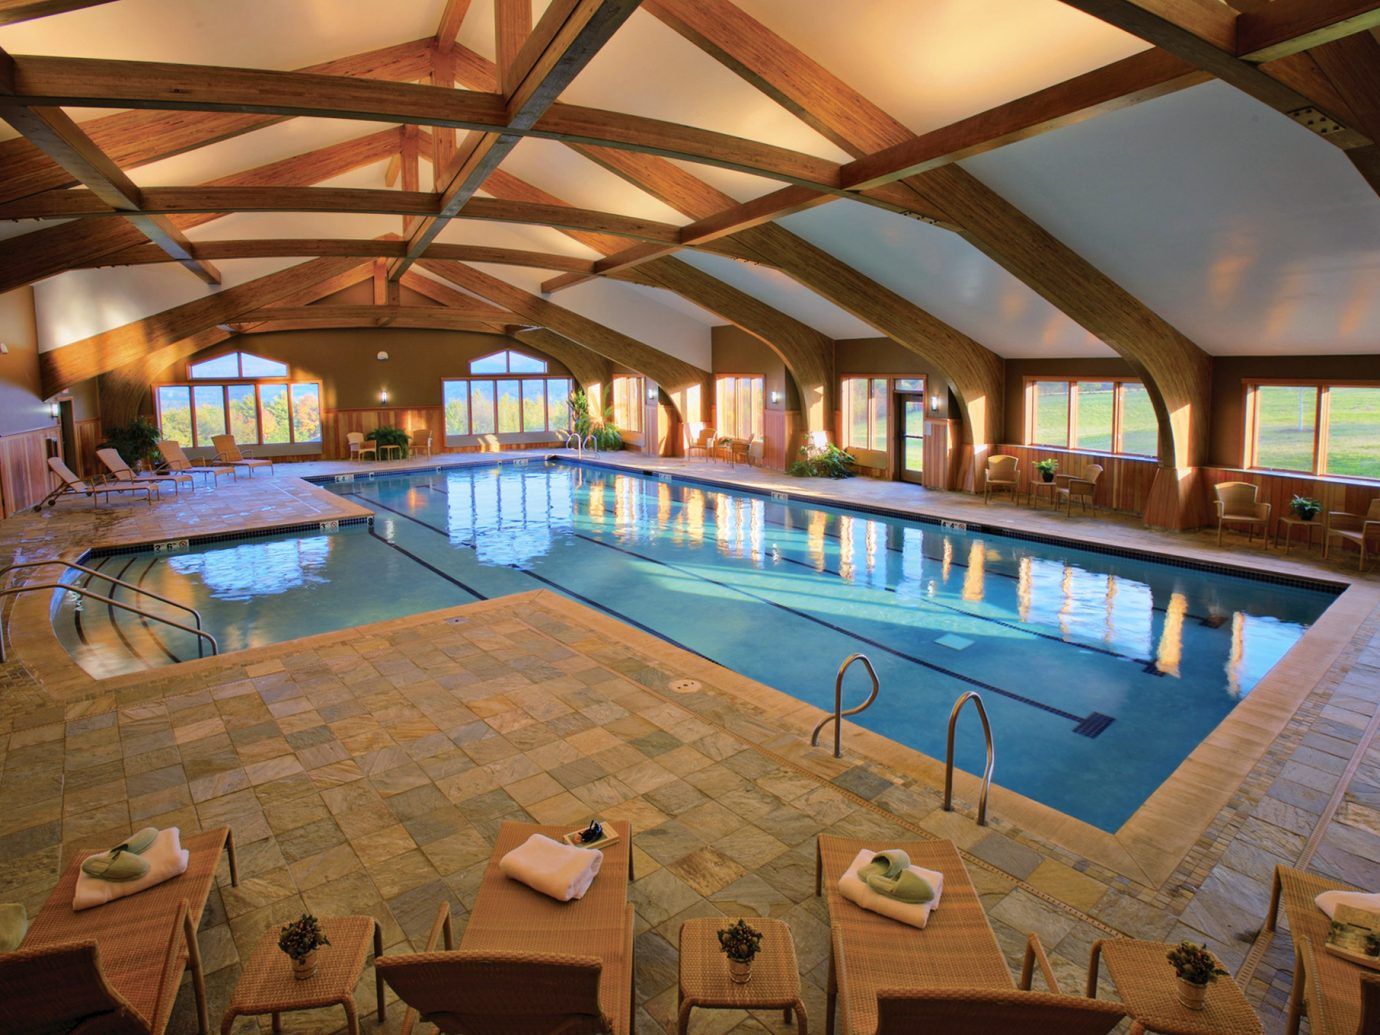 Pool at Trapp Family Lodge, Stowe, Vermont